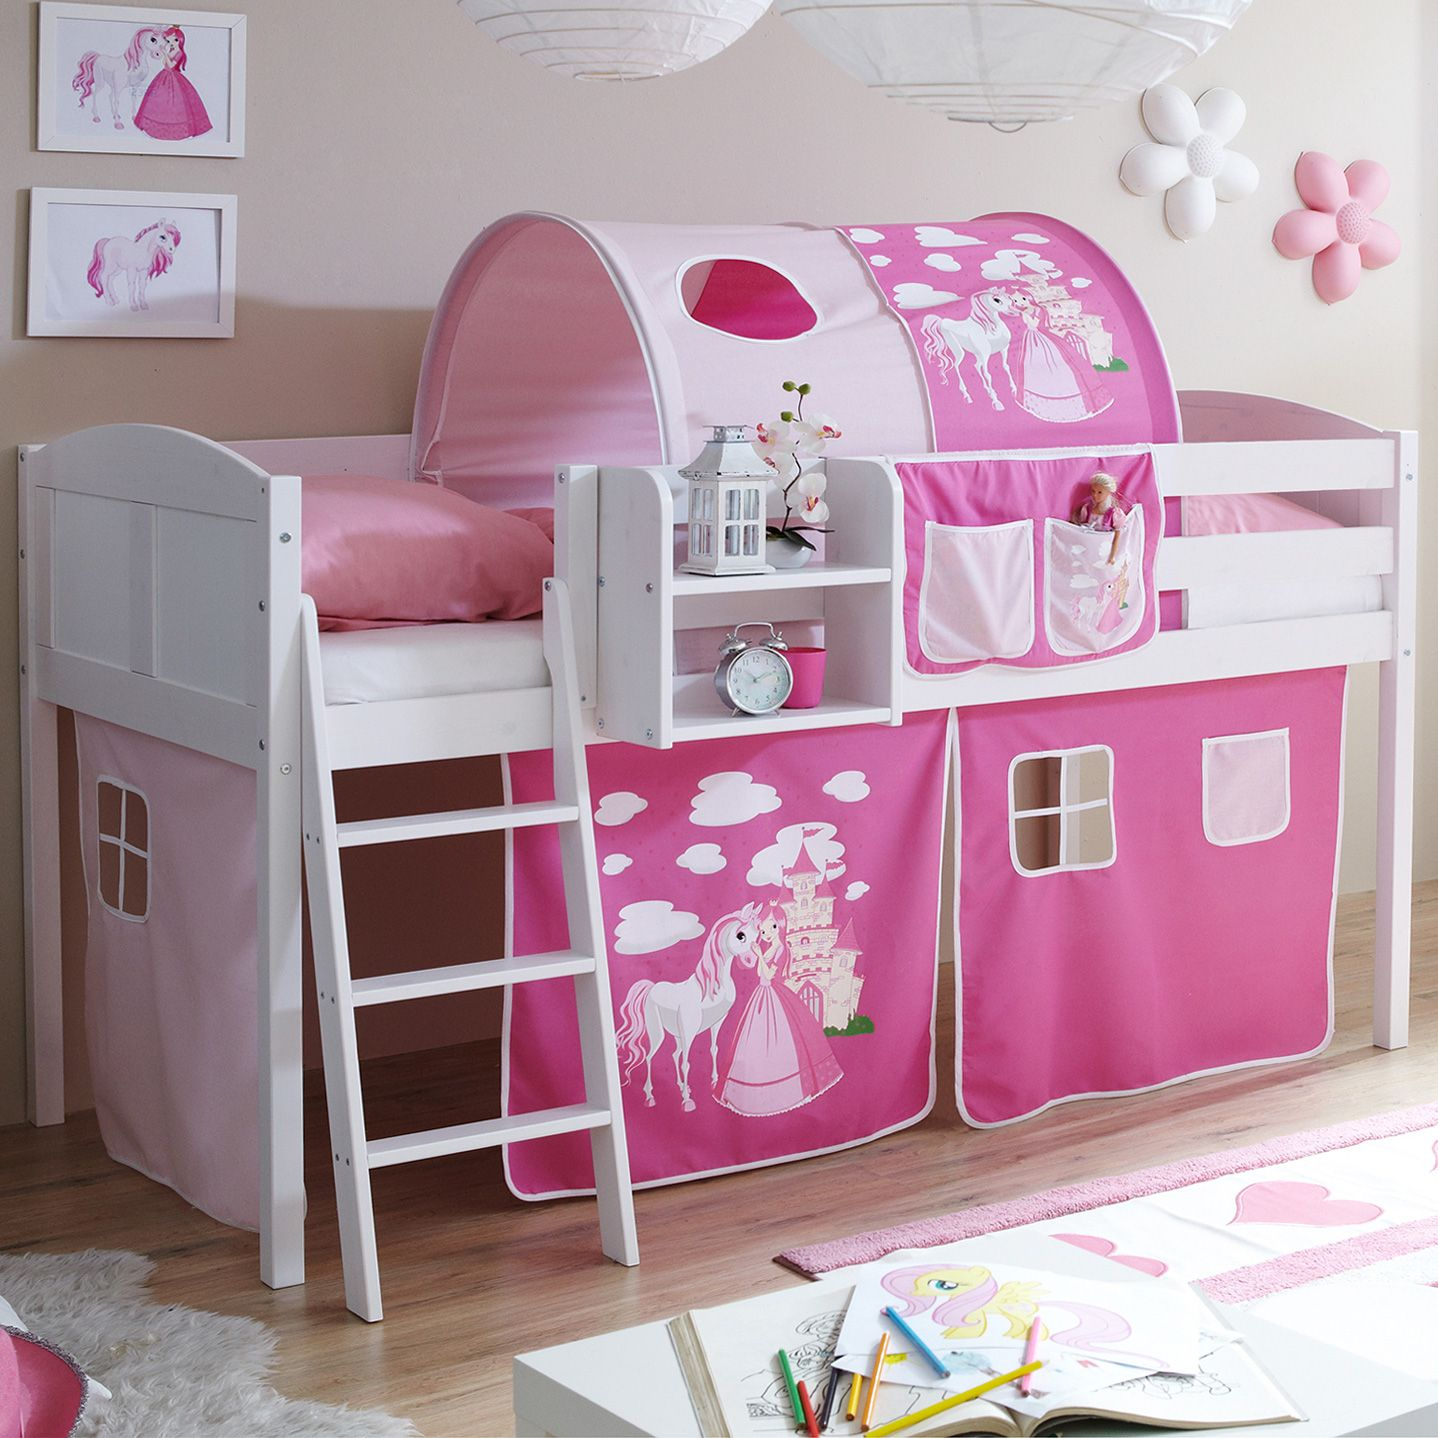 kinderzimmer ideen f r m dchen hochbett. Black Bedroom Furniture Sets. Home Design Ideas